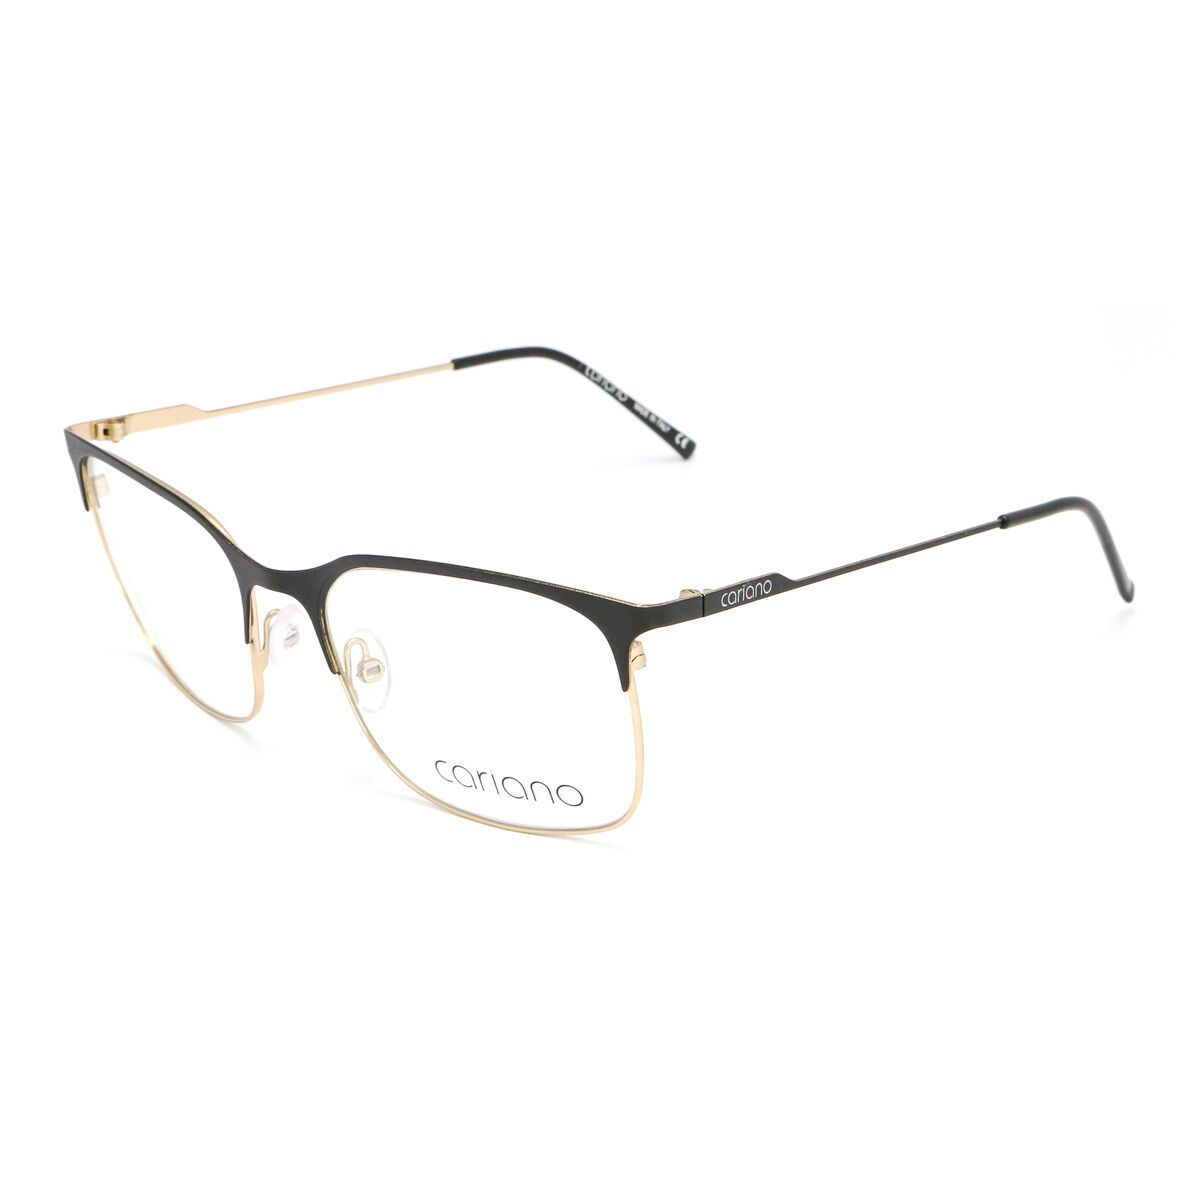 Cariano - 5004 B size - 54